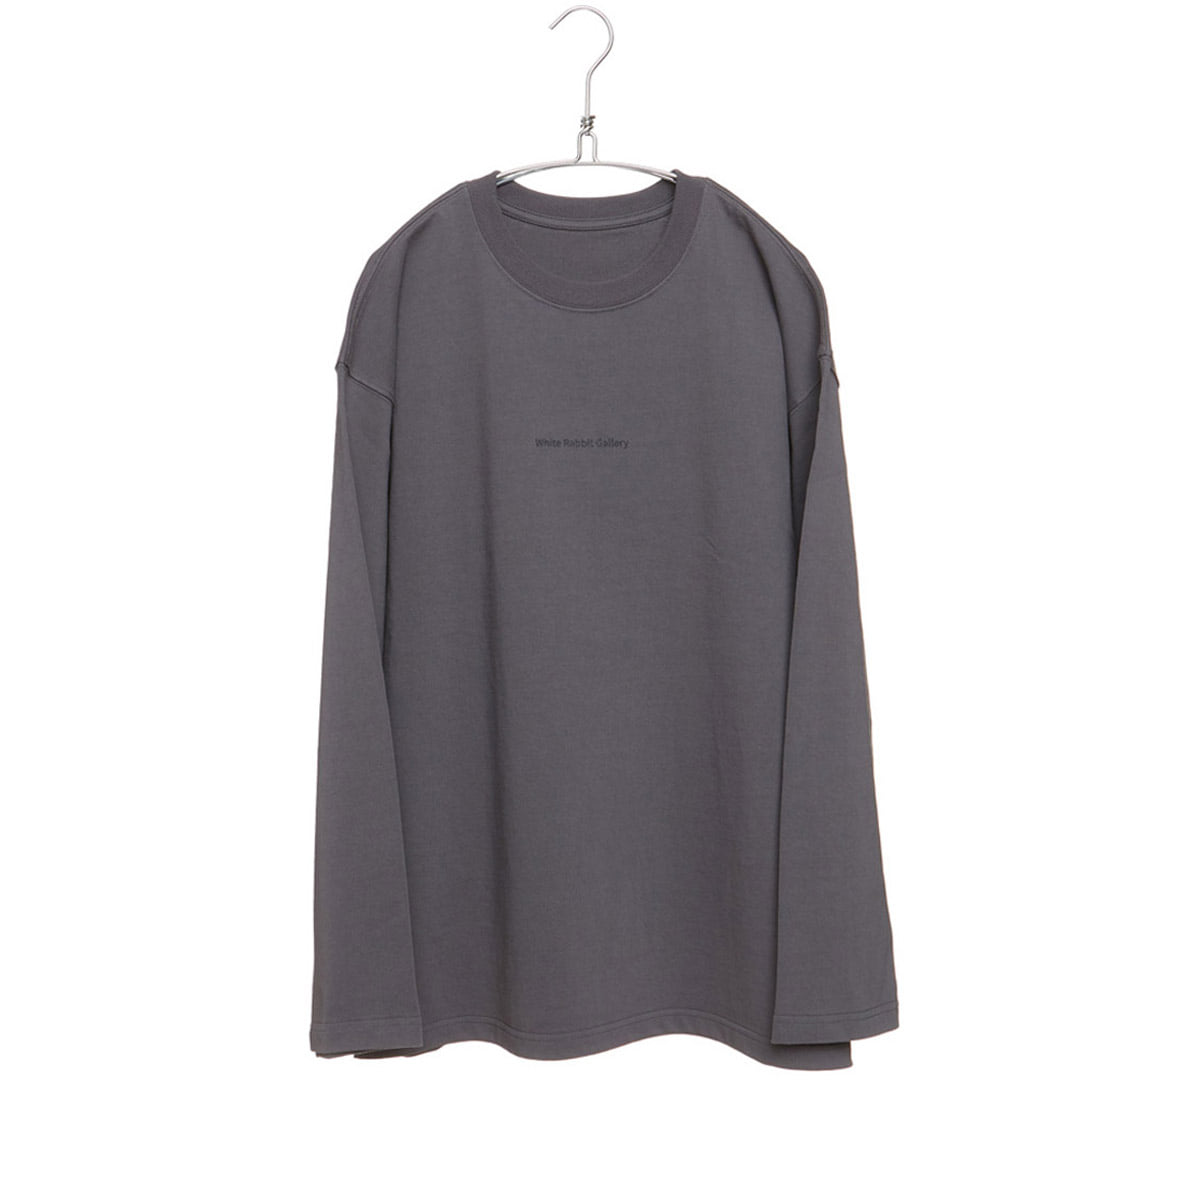 [YOUTH] INSPIRATION T-SHIRT 'CHARCOAL GREY'